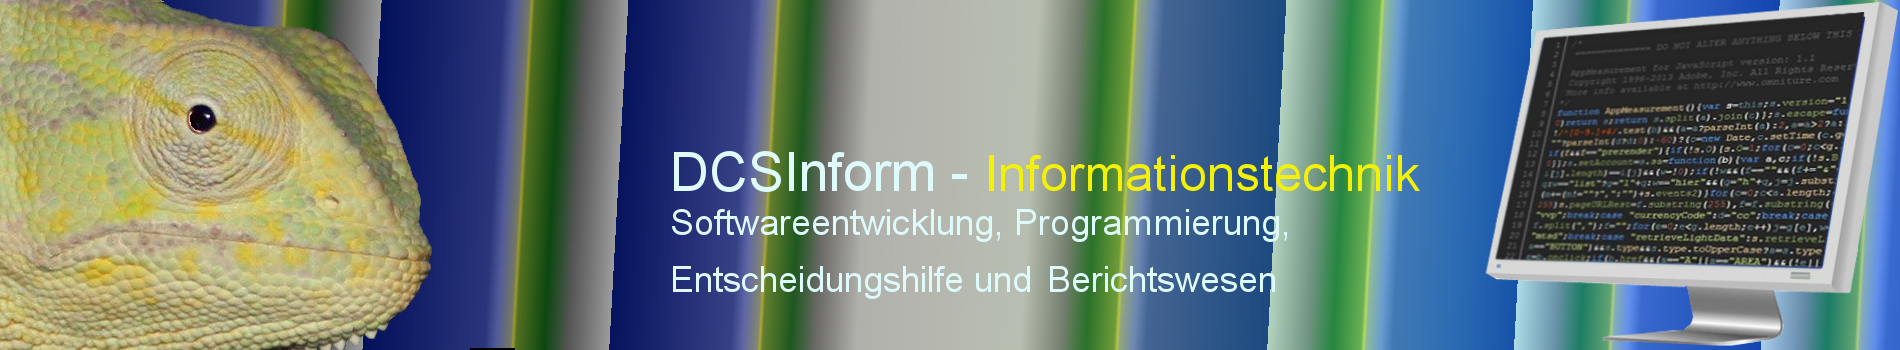 DCSInform - Informationstechnik